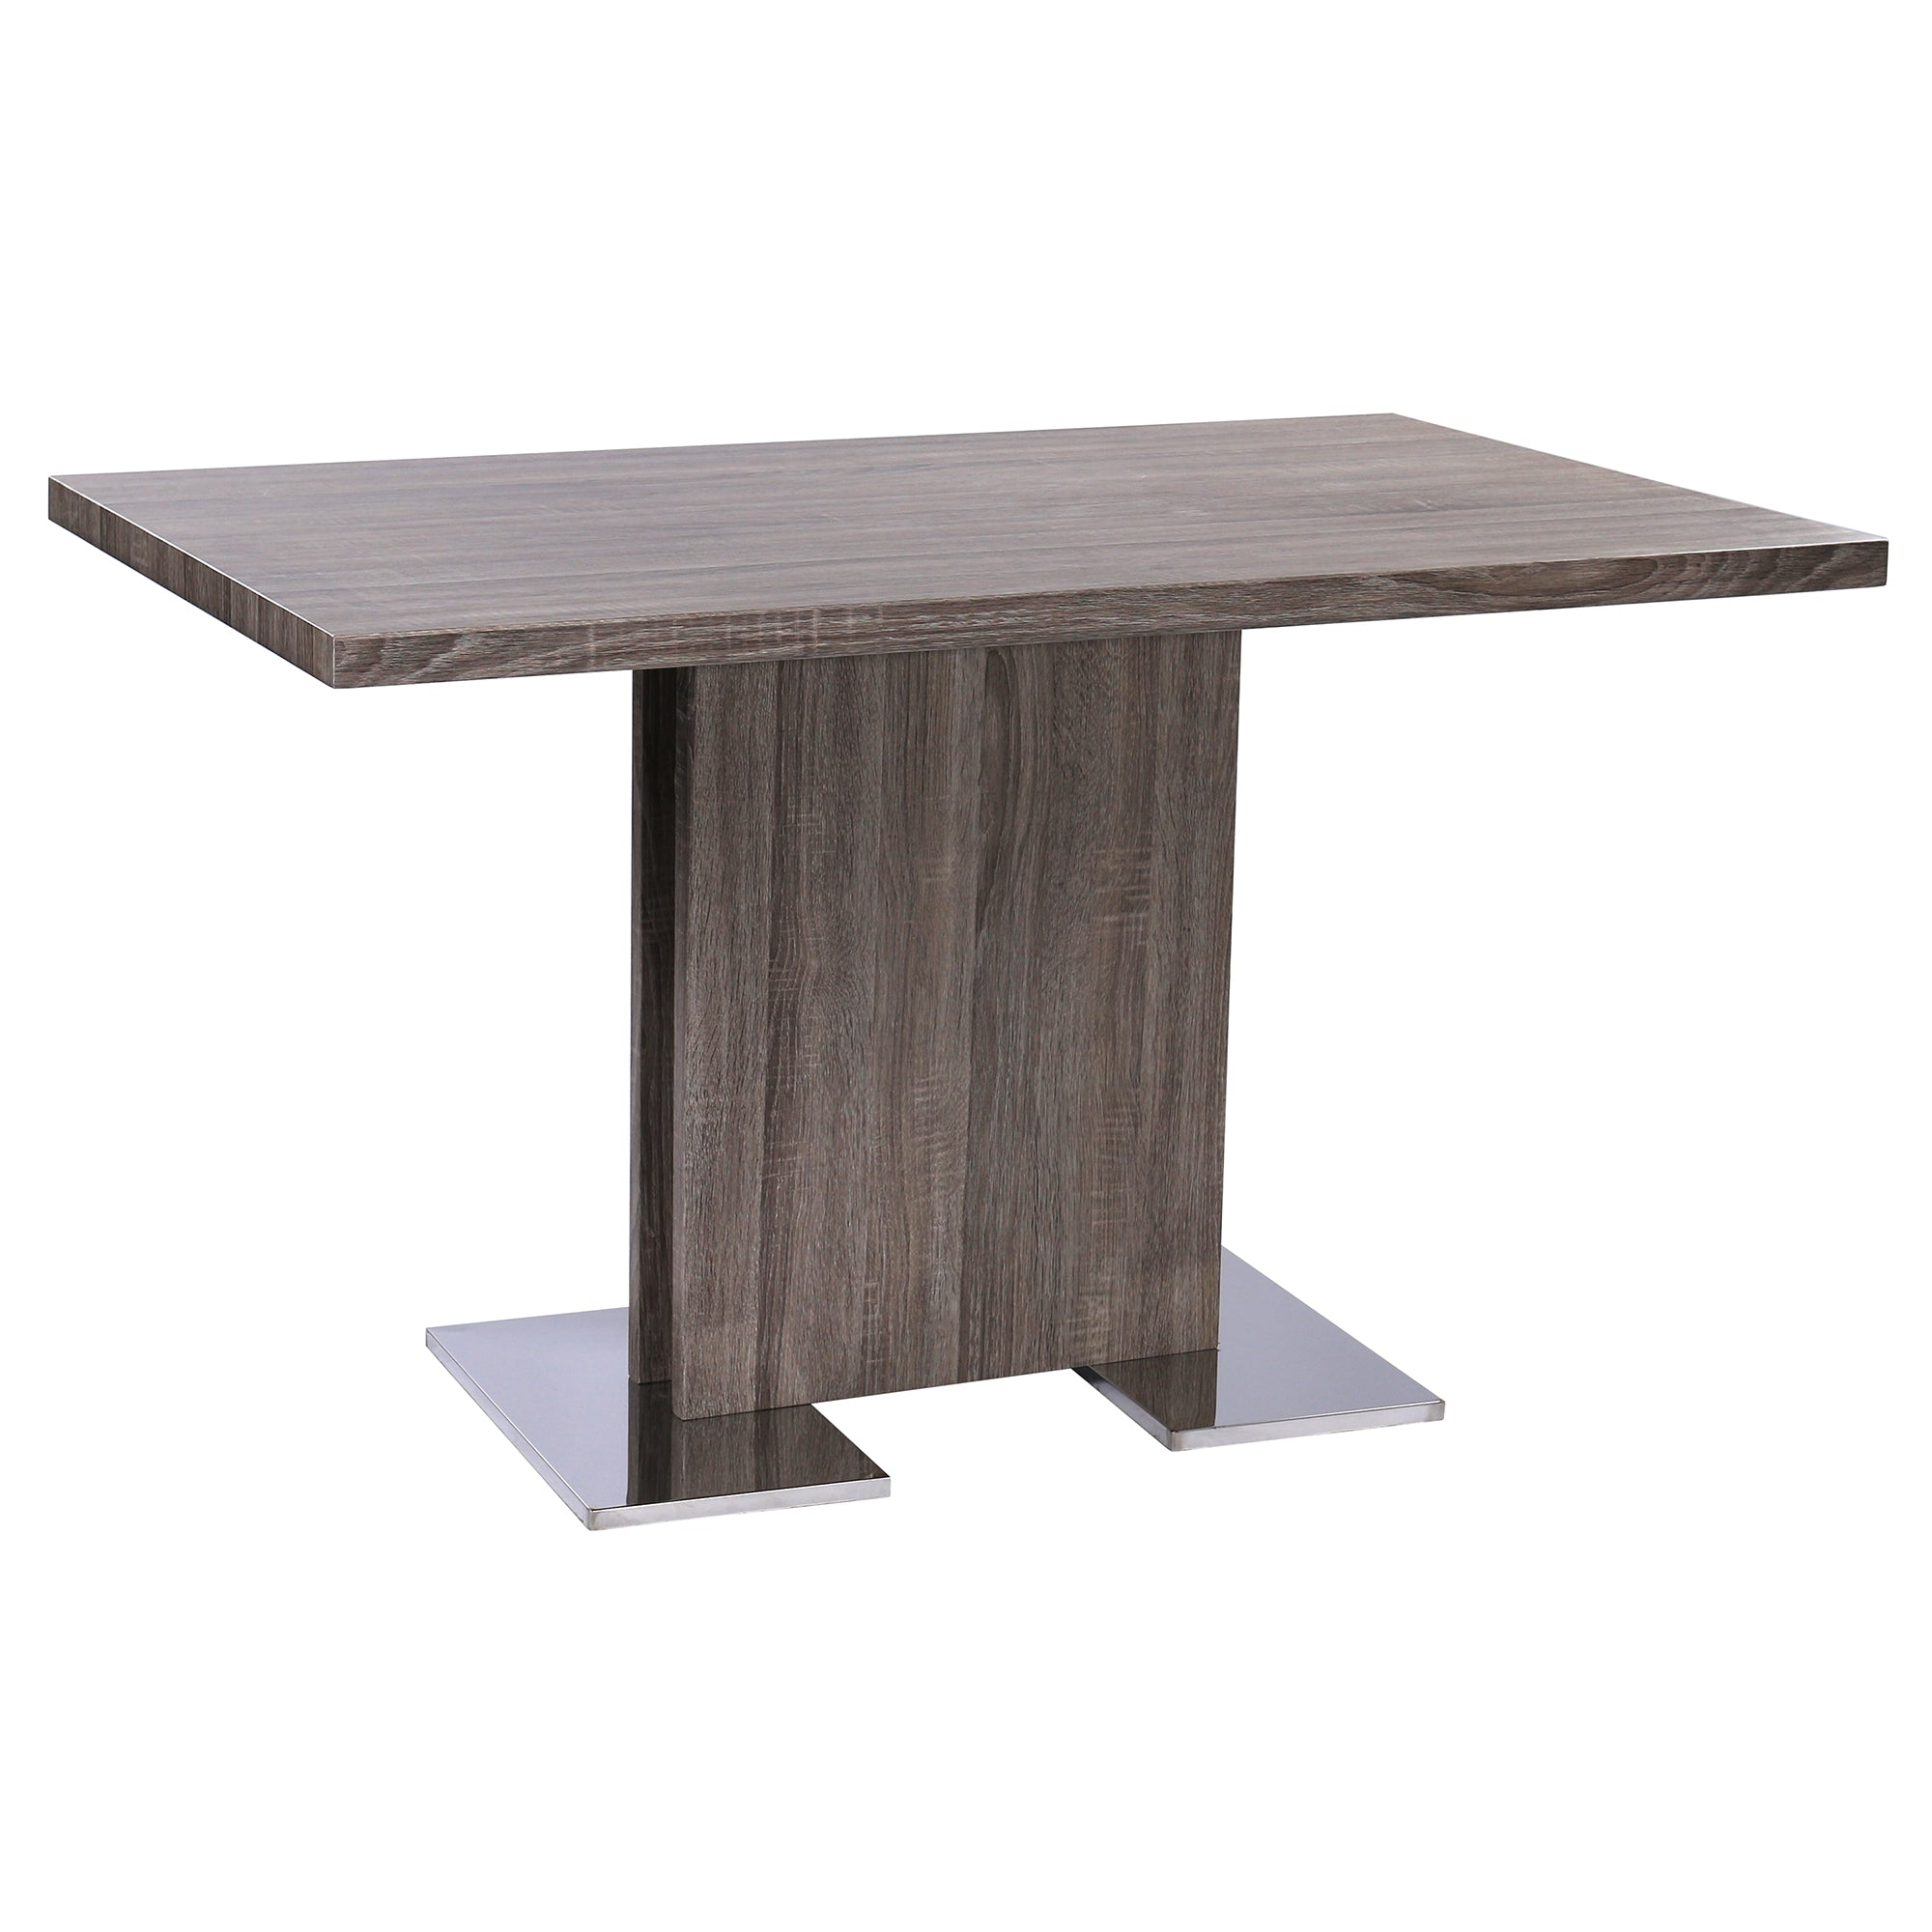 Contemporary Dining Table Brushed Stainless Steel Base 2787 Product Photo